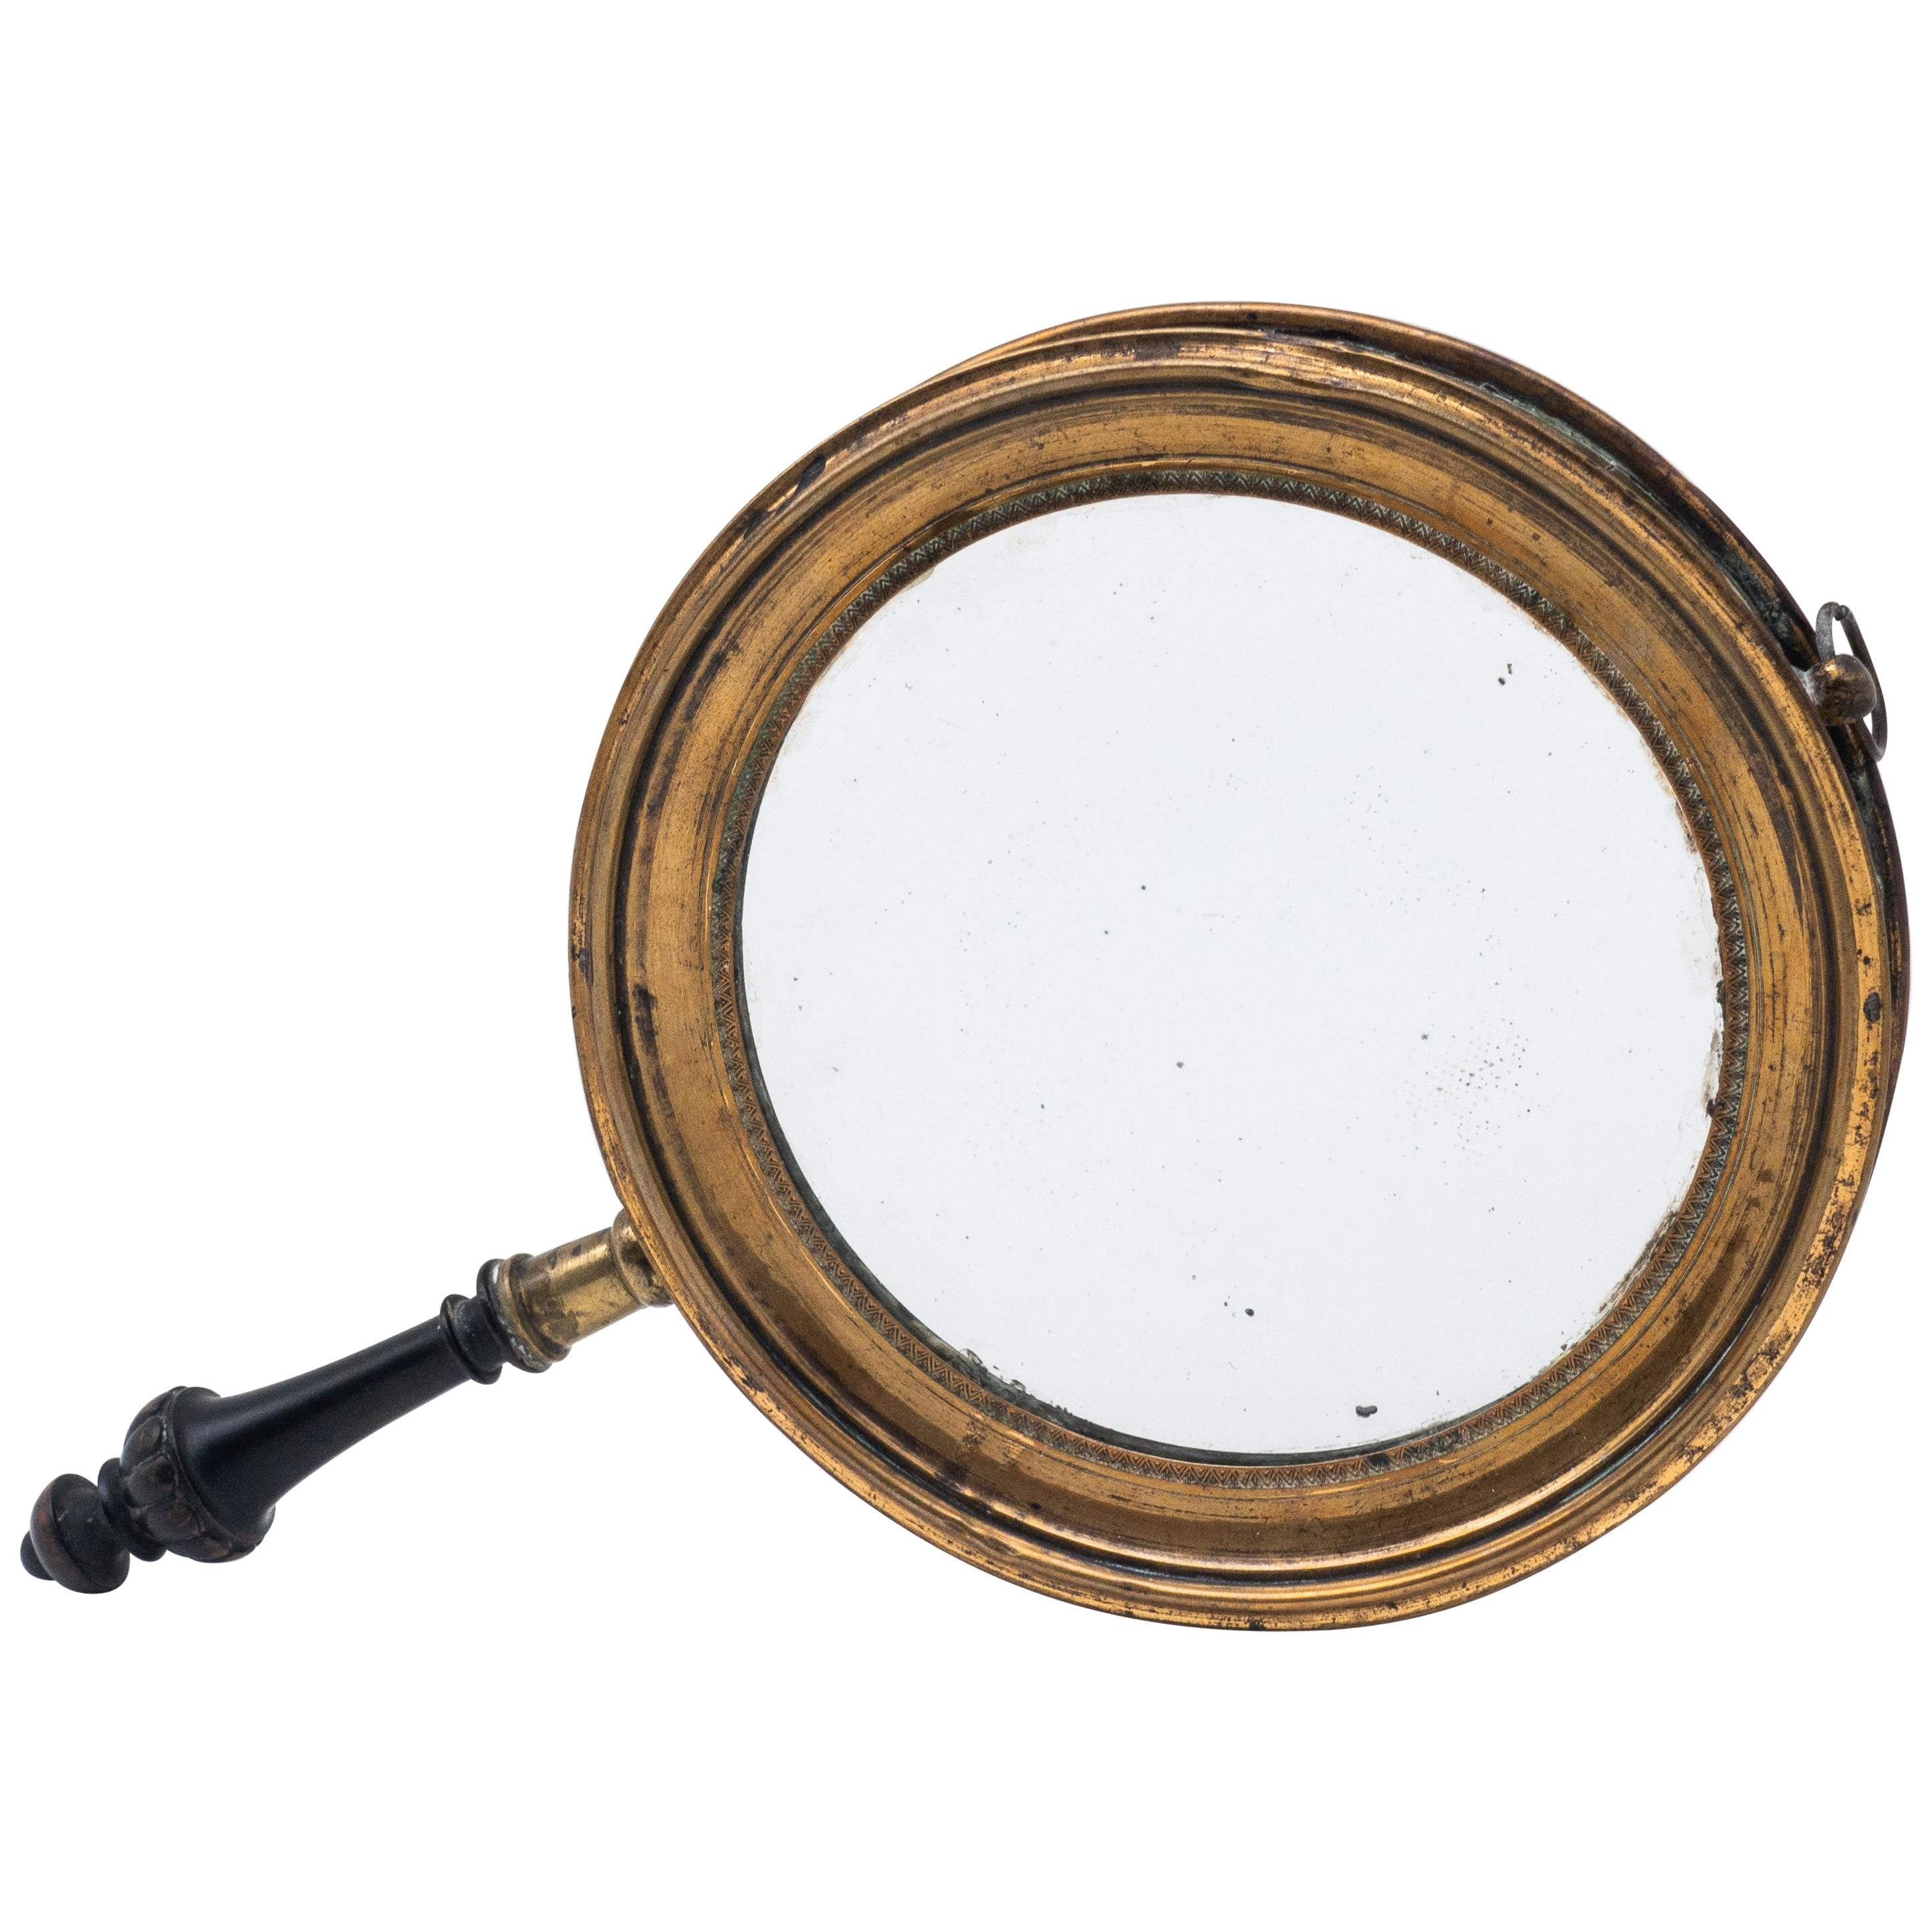 Antique Concave Brass and Carved Wood Hand Mirror, 19th Century